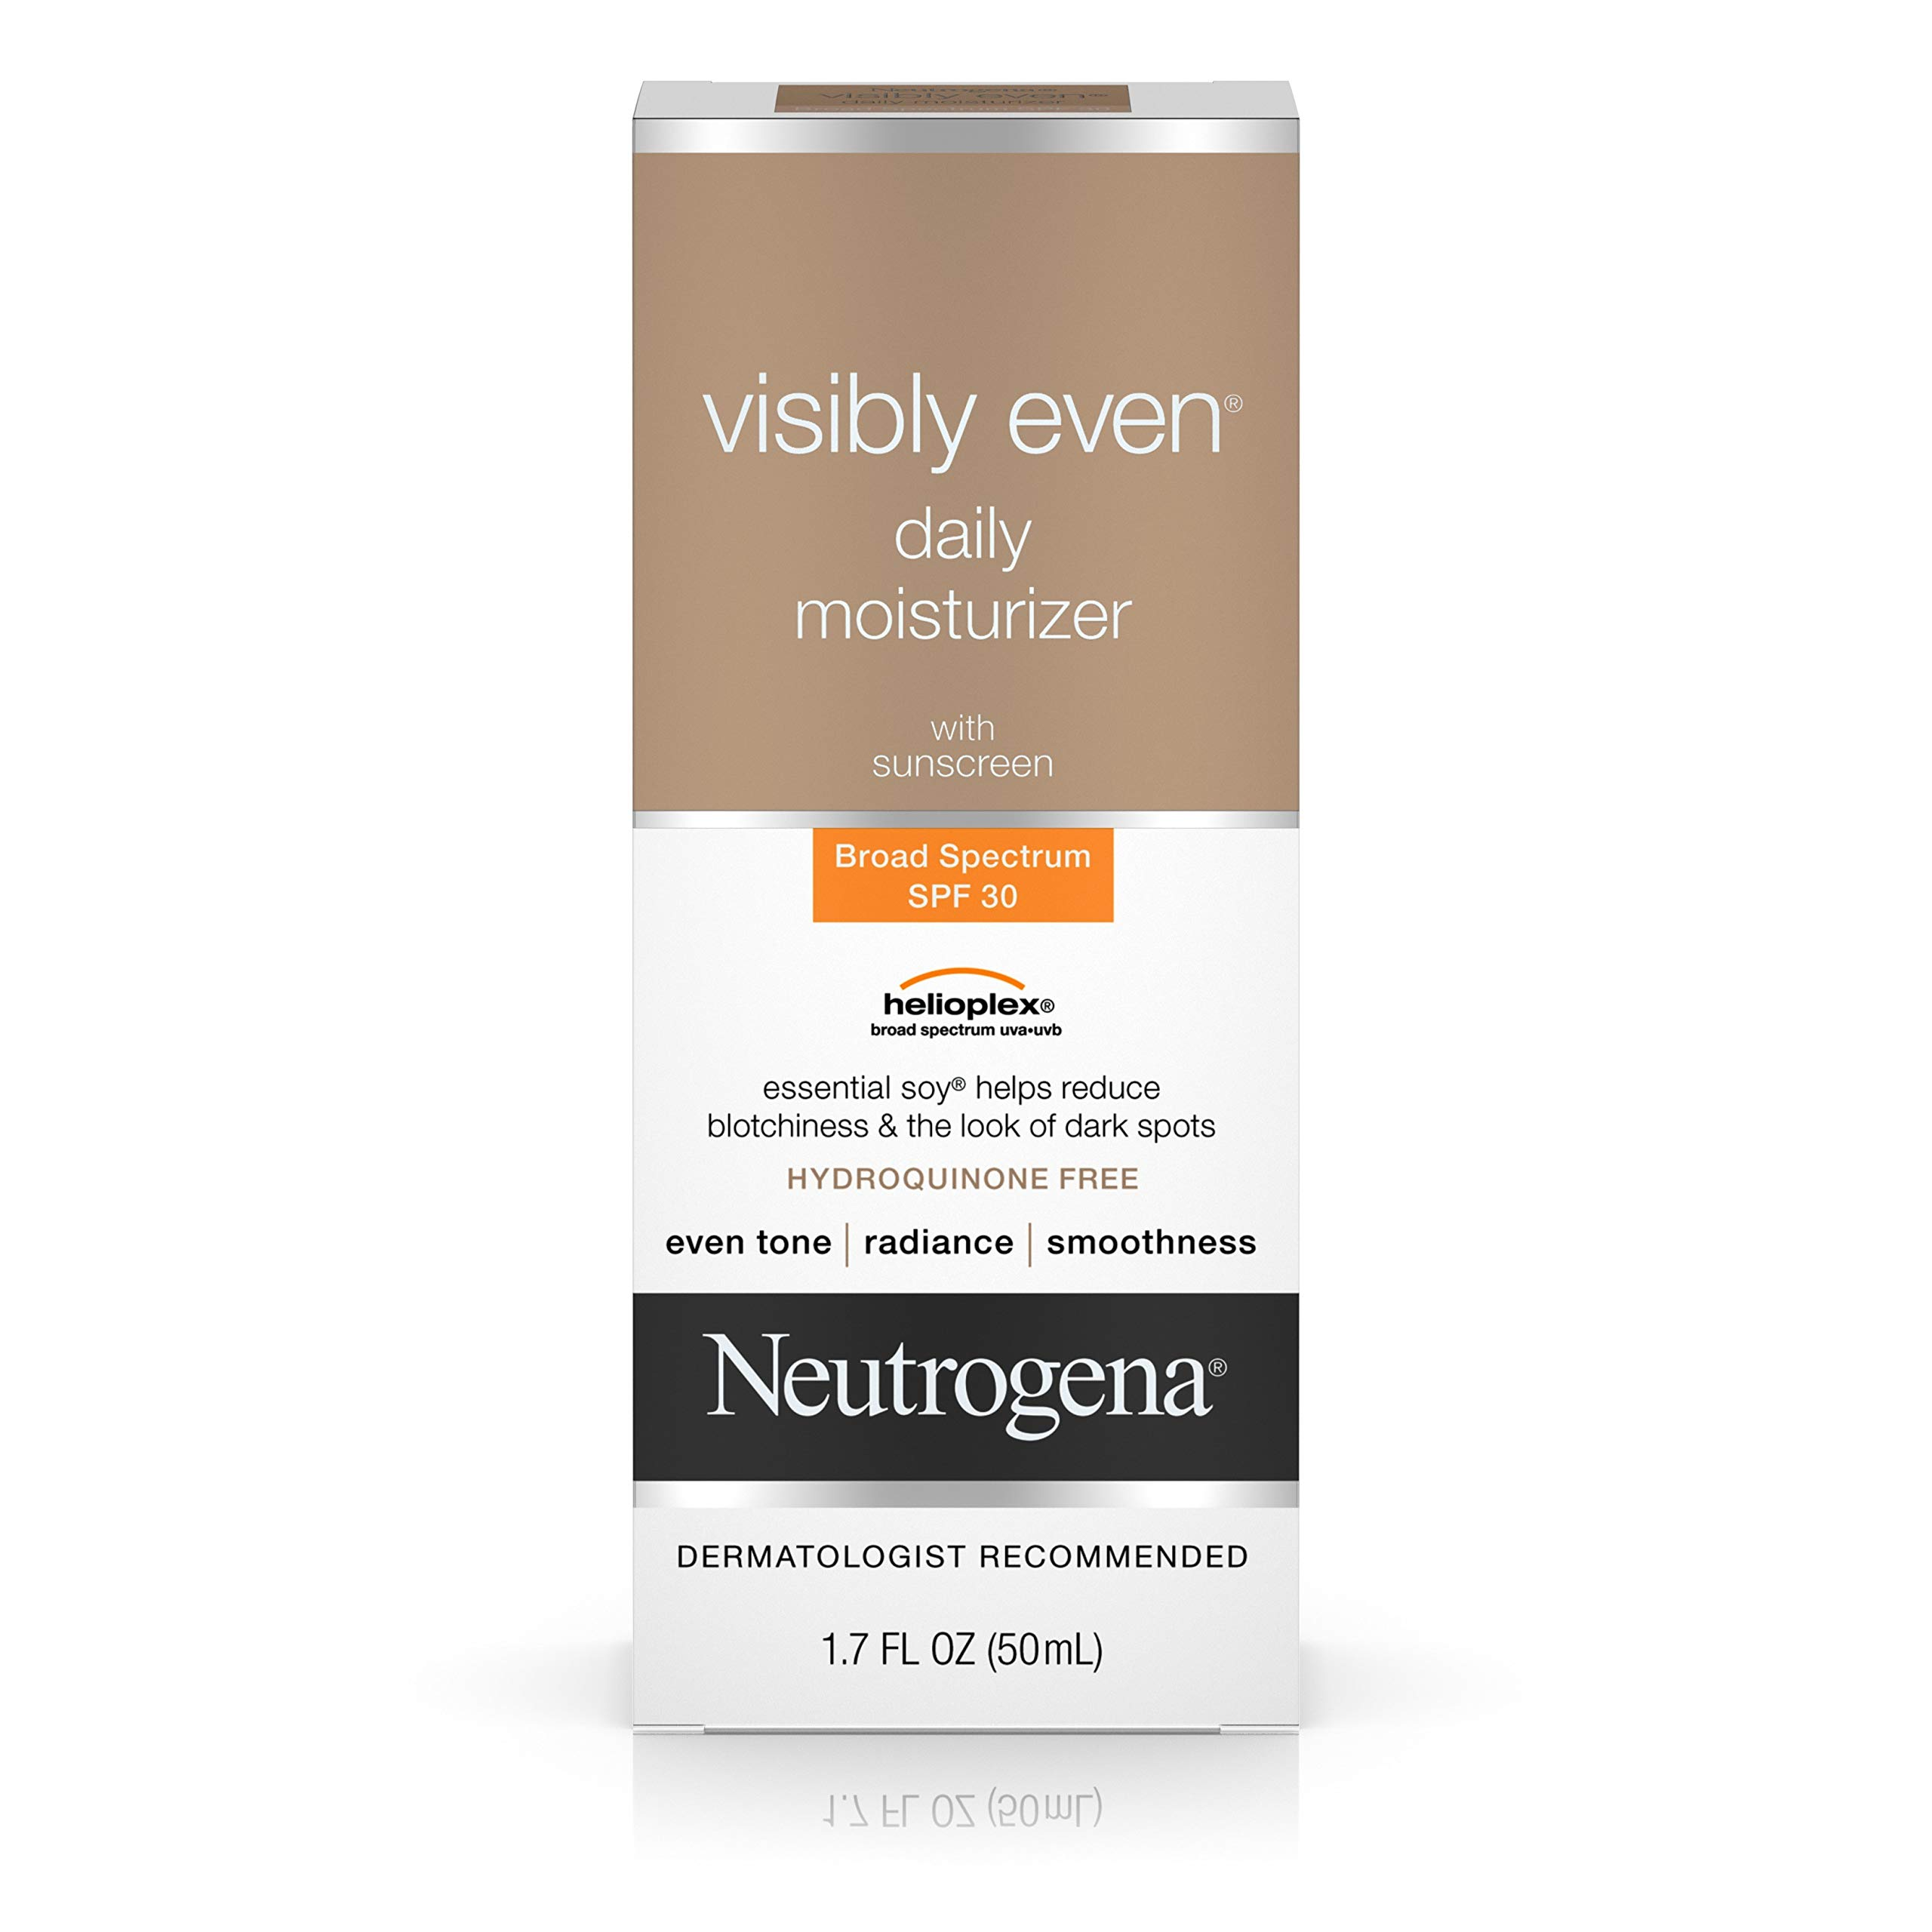 Neutrogena Visibly Even Daily Facial Moisturizer With Broad Spectrum SPF 30 Sunscreen, Essential Soy for Skin Discoloration, Dark Spots, and Even Skin Tone, Hypoallergenic, 1.7 fl. Oz by Neutrogena